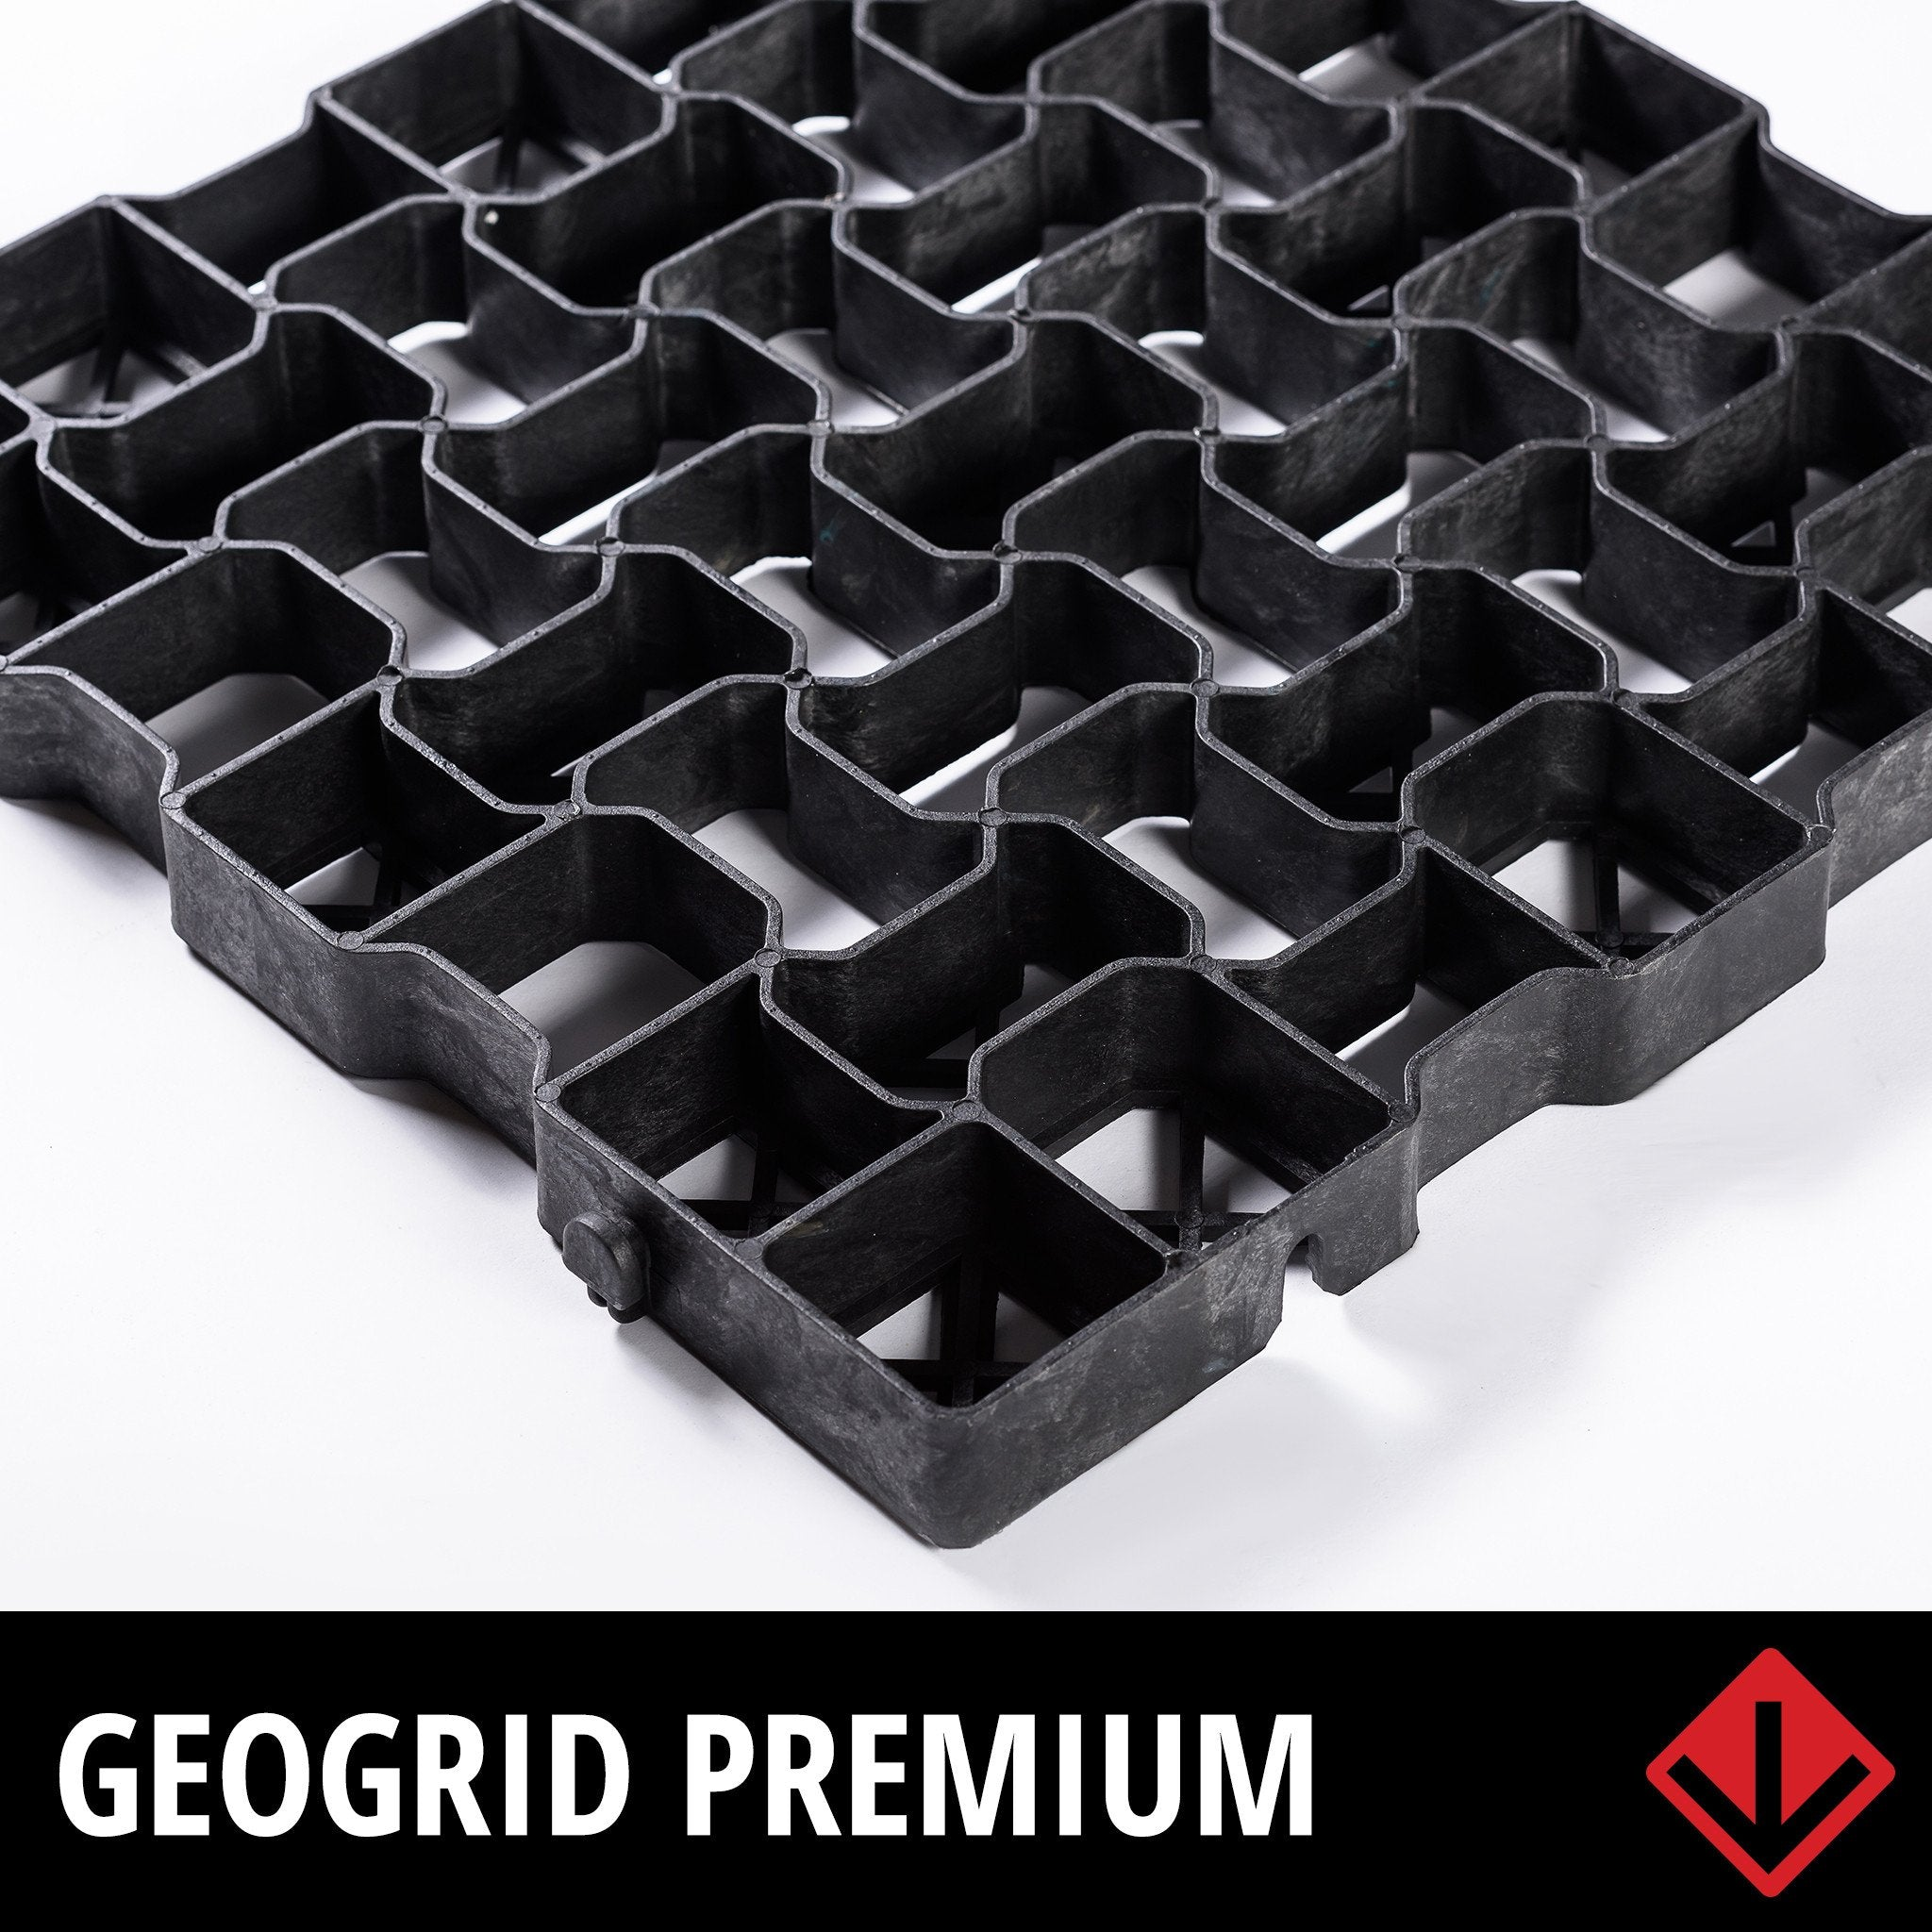 8x6 Greenhouse Foundation Pack Greater Flexibility